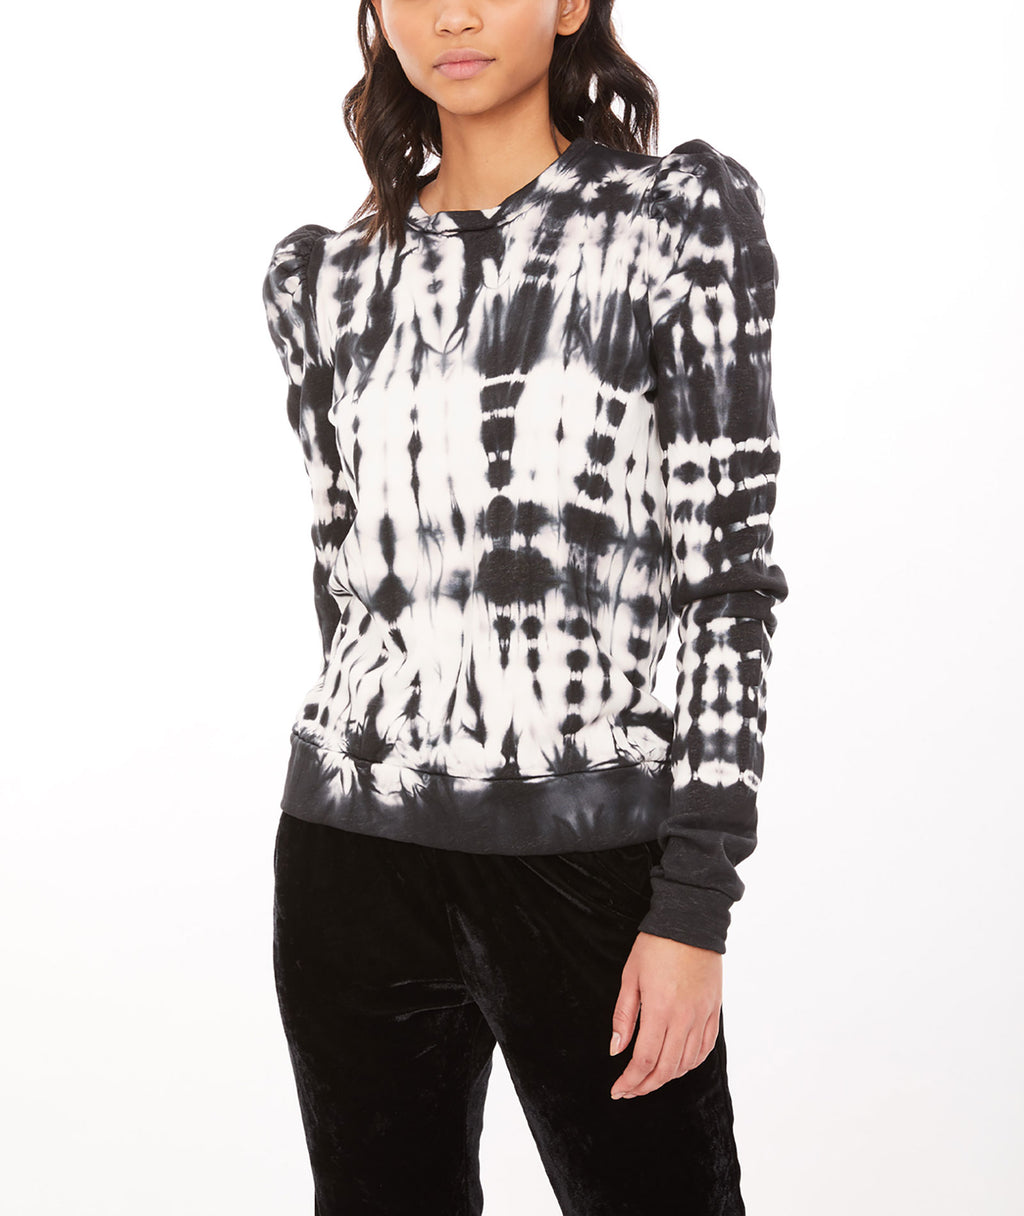 Generation Love Women Natasha Black & White Tie-Dye Sweatshirt